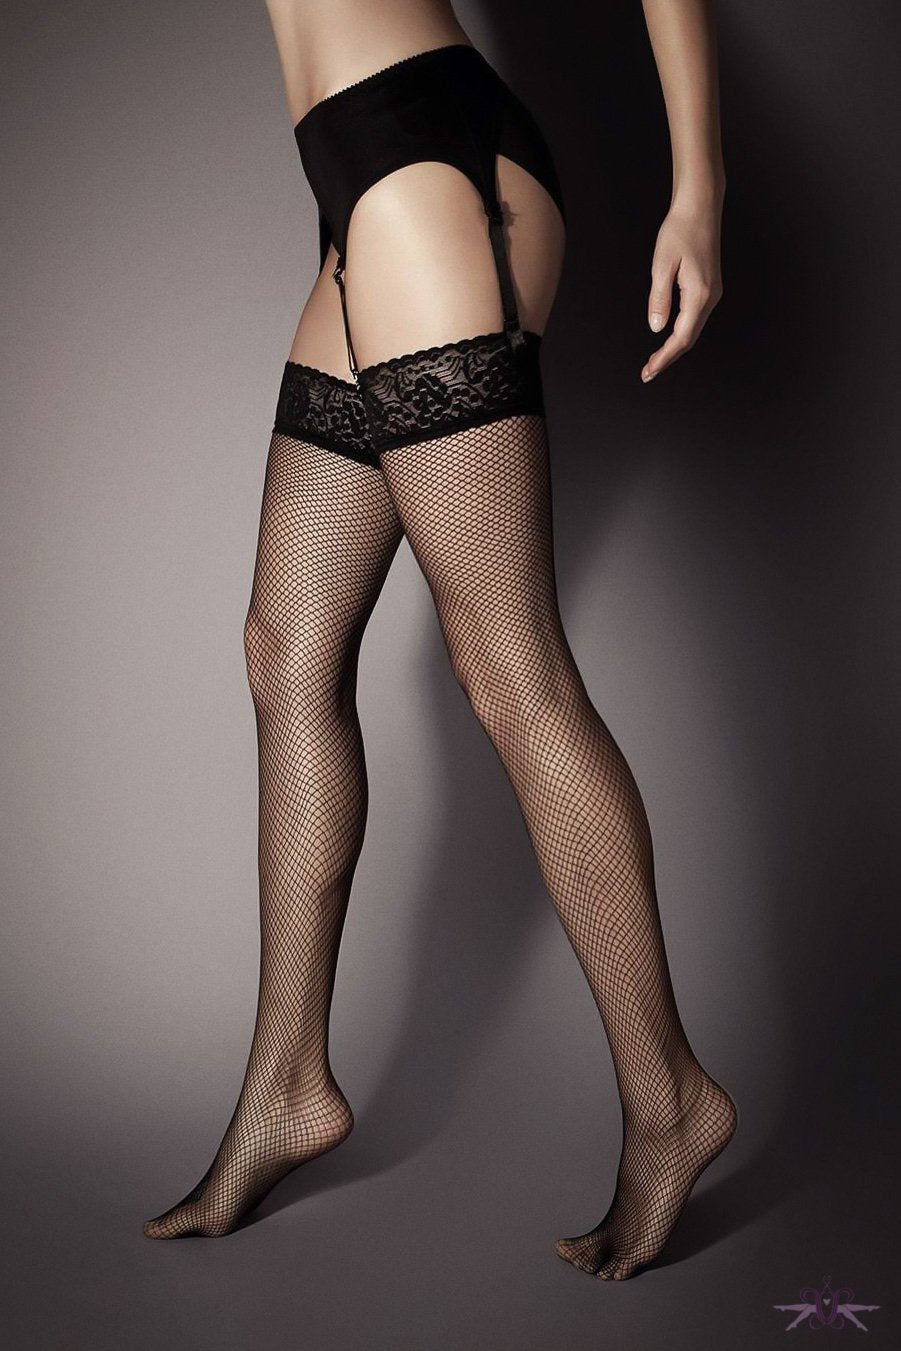 Veneziana Rete Fishnet Stockings - The Hosiery Box